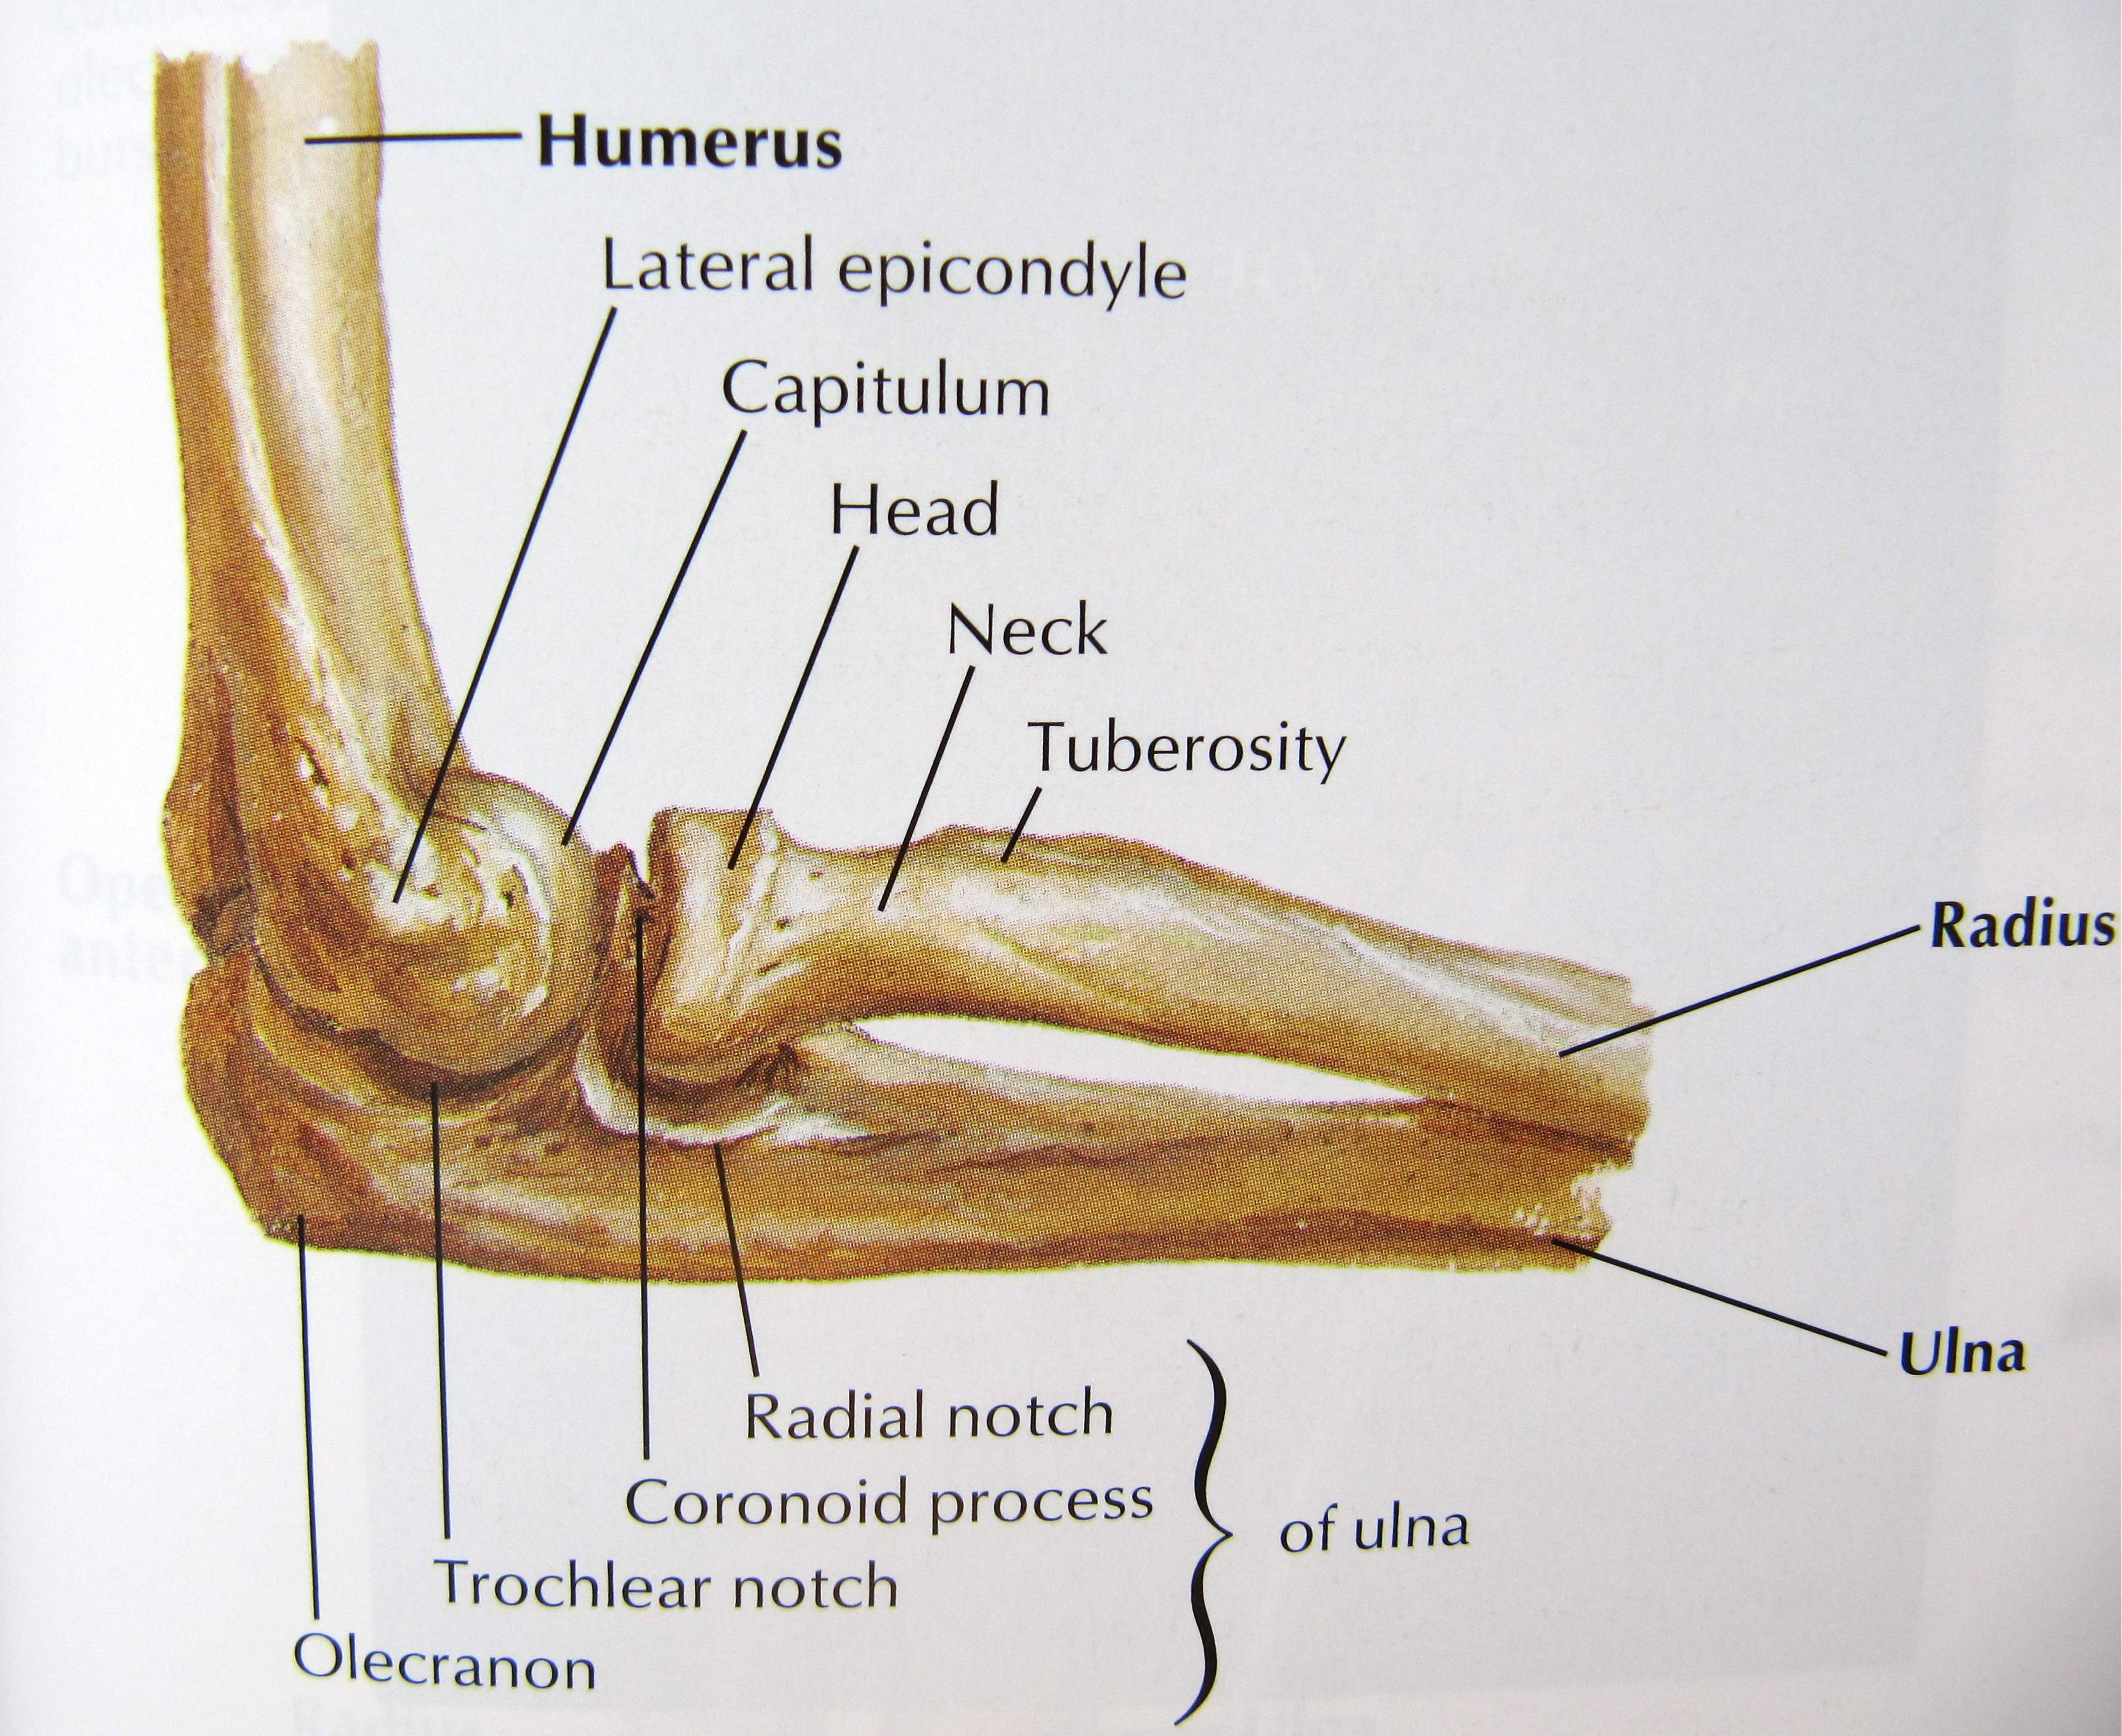 Eli carmeli physical therapy - Radial Head Fracture And Physical Therapy Image Results The Radial Head Is The Knobby End Of The Radius Where It Meets The Elbow